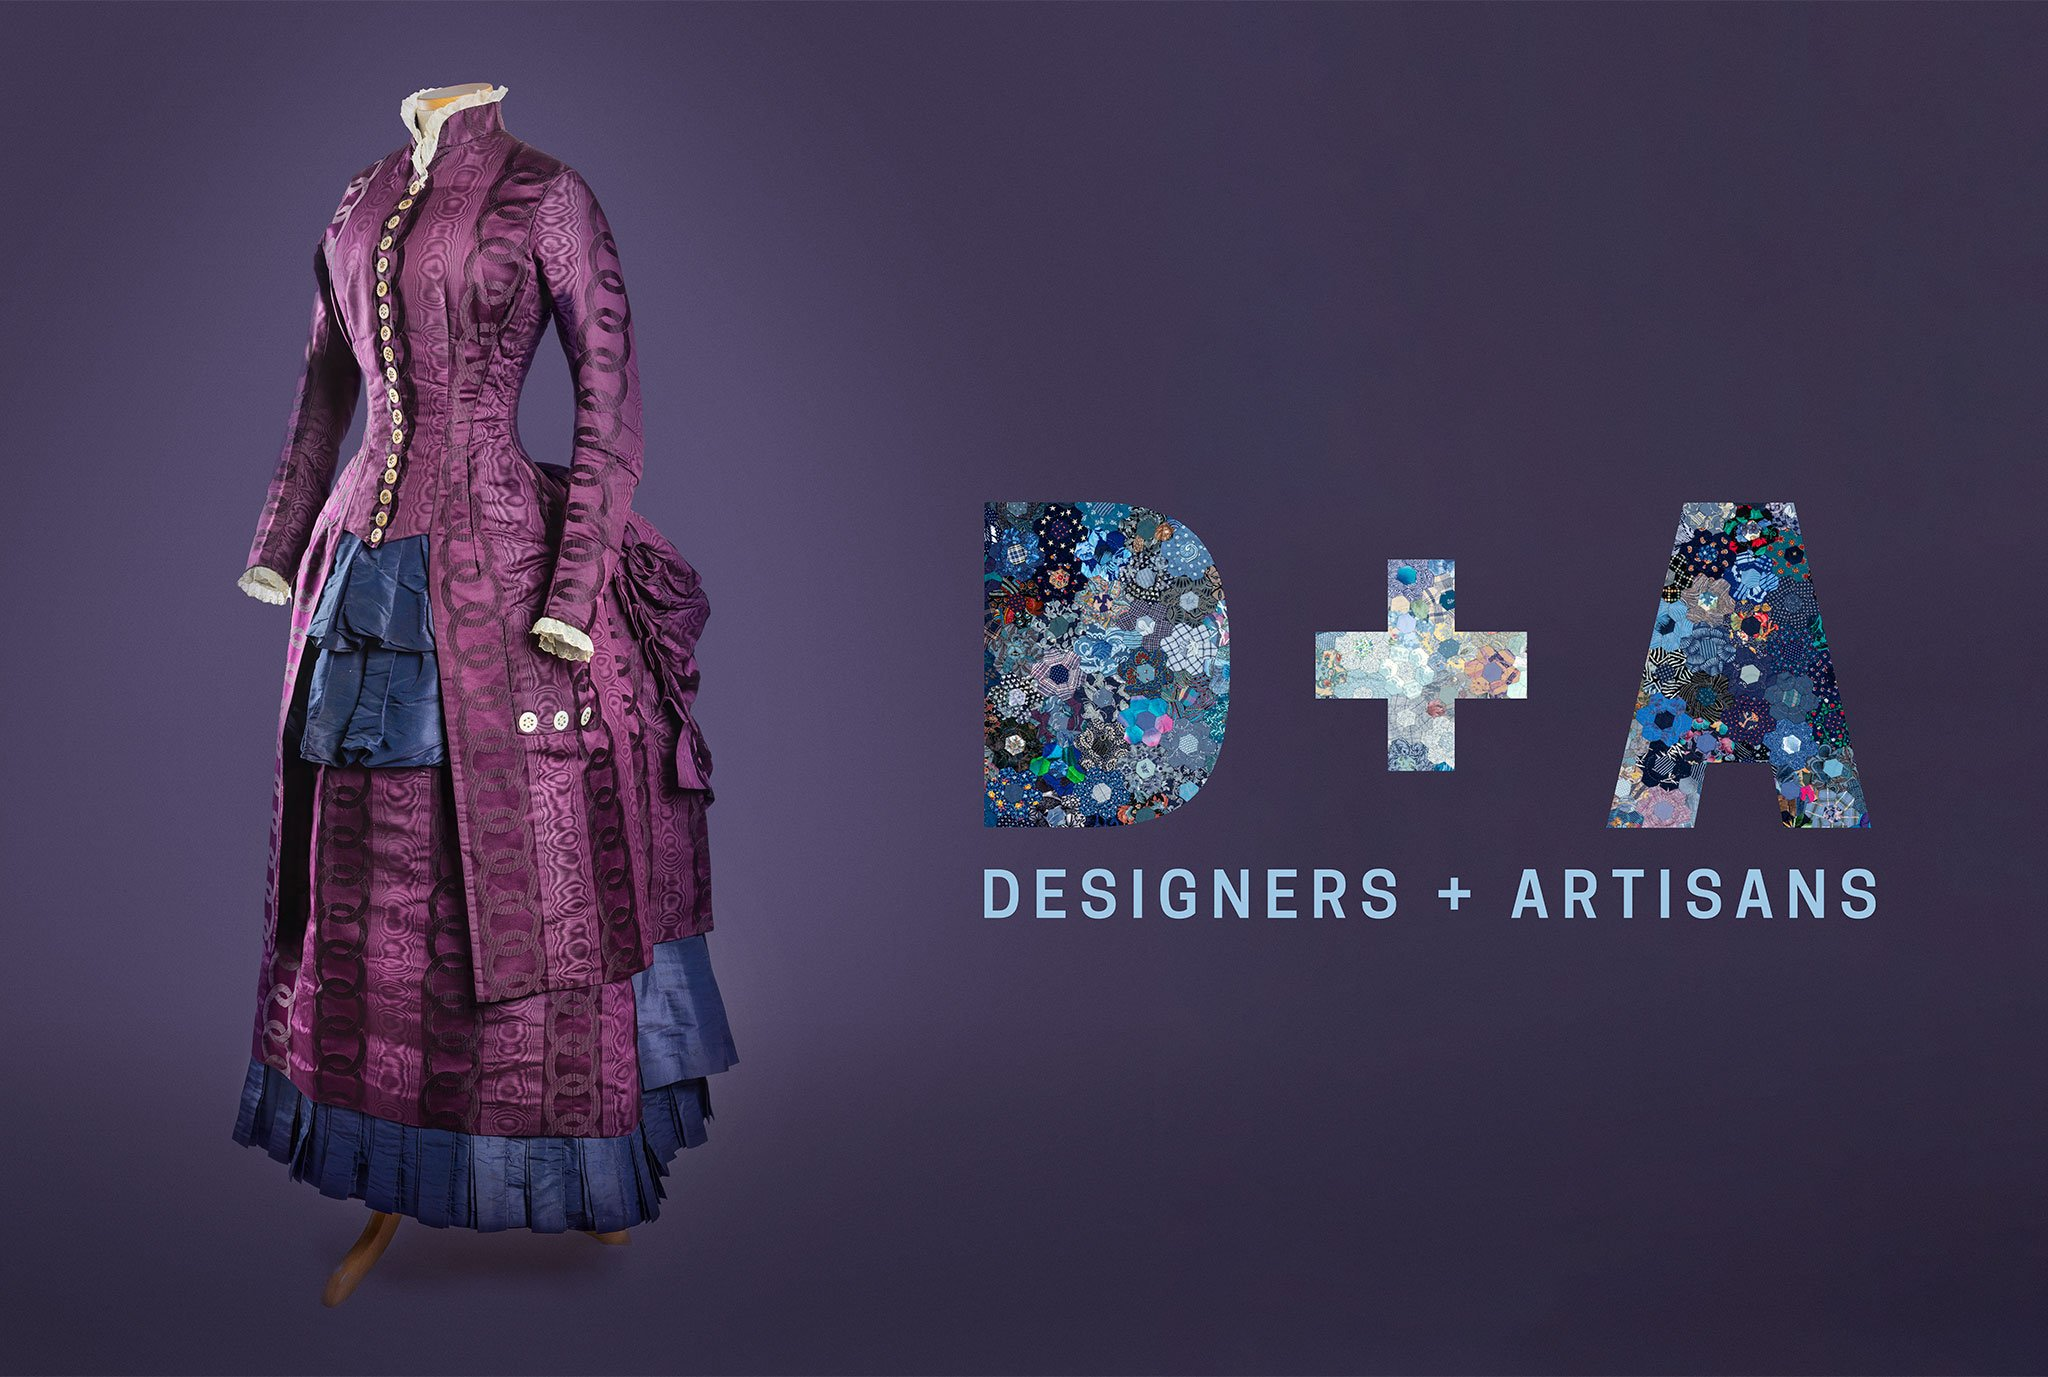 Designers and Artisans Title graphic with purple dress